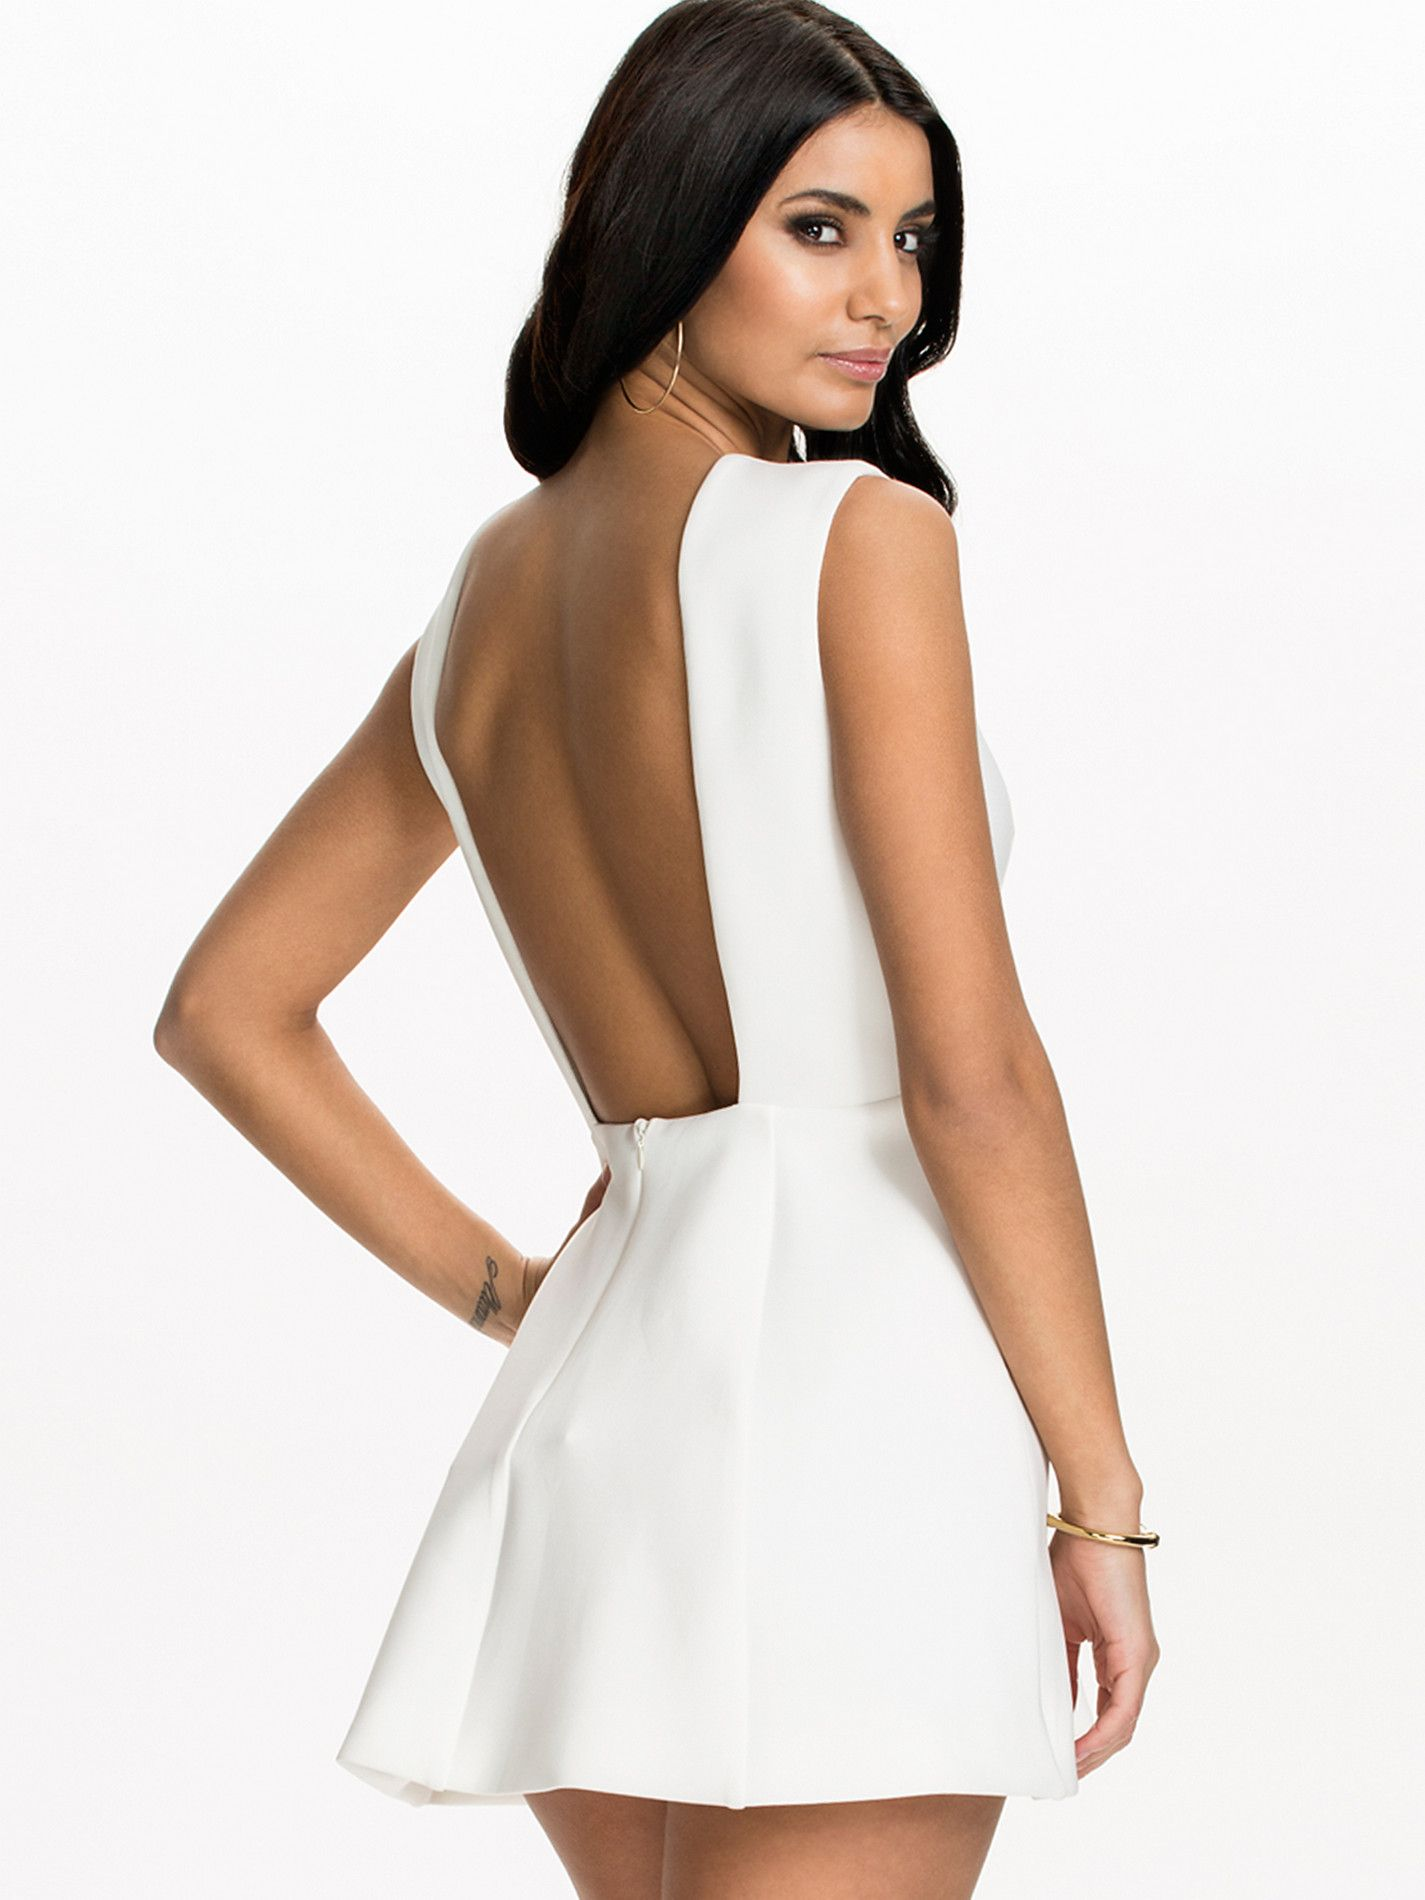 Bare Back Structure Dress - Nly One - White - Party Dresses ...